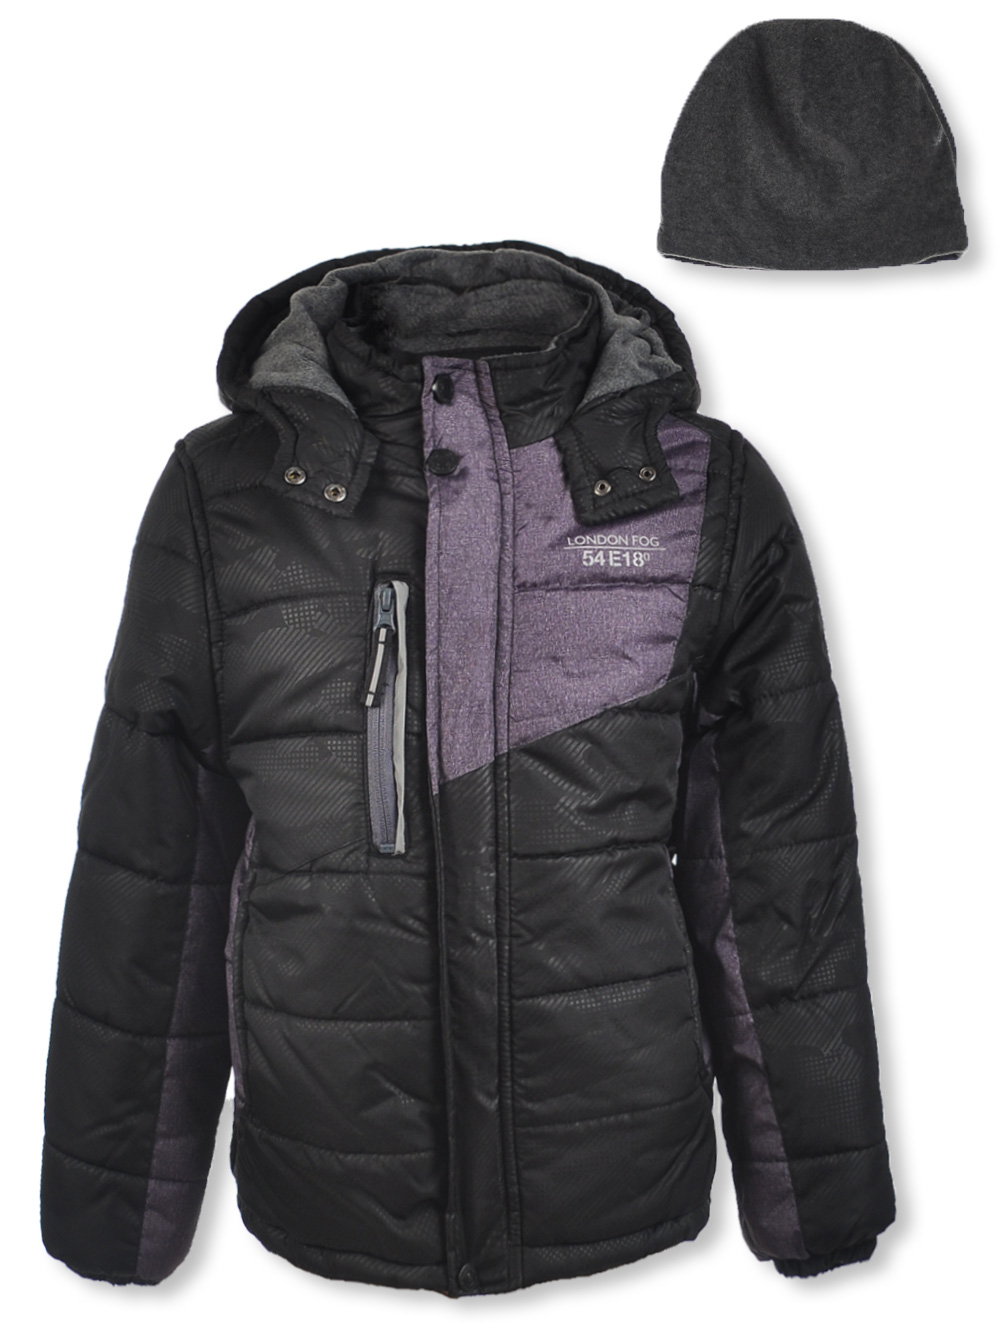 Shoulder Panel Insulated Jacket with Beanie